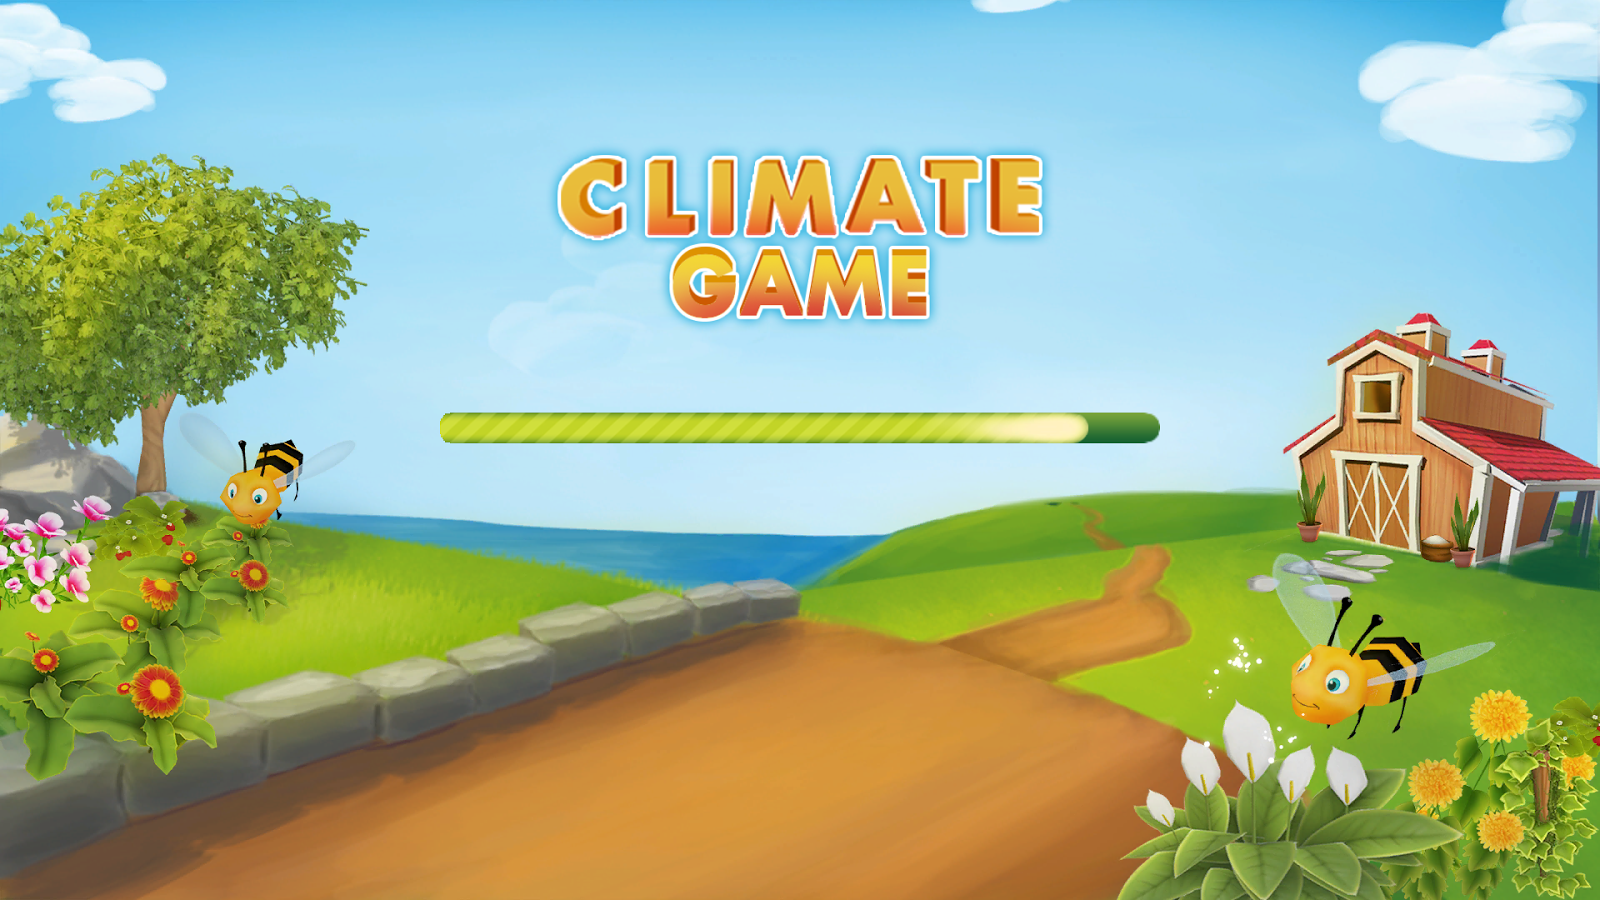 Climate Game- Save Earth while having fun- screenshot